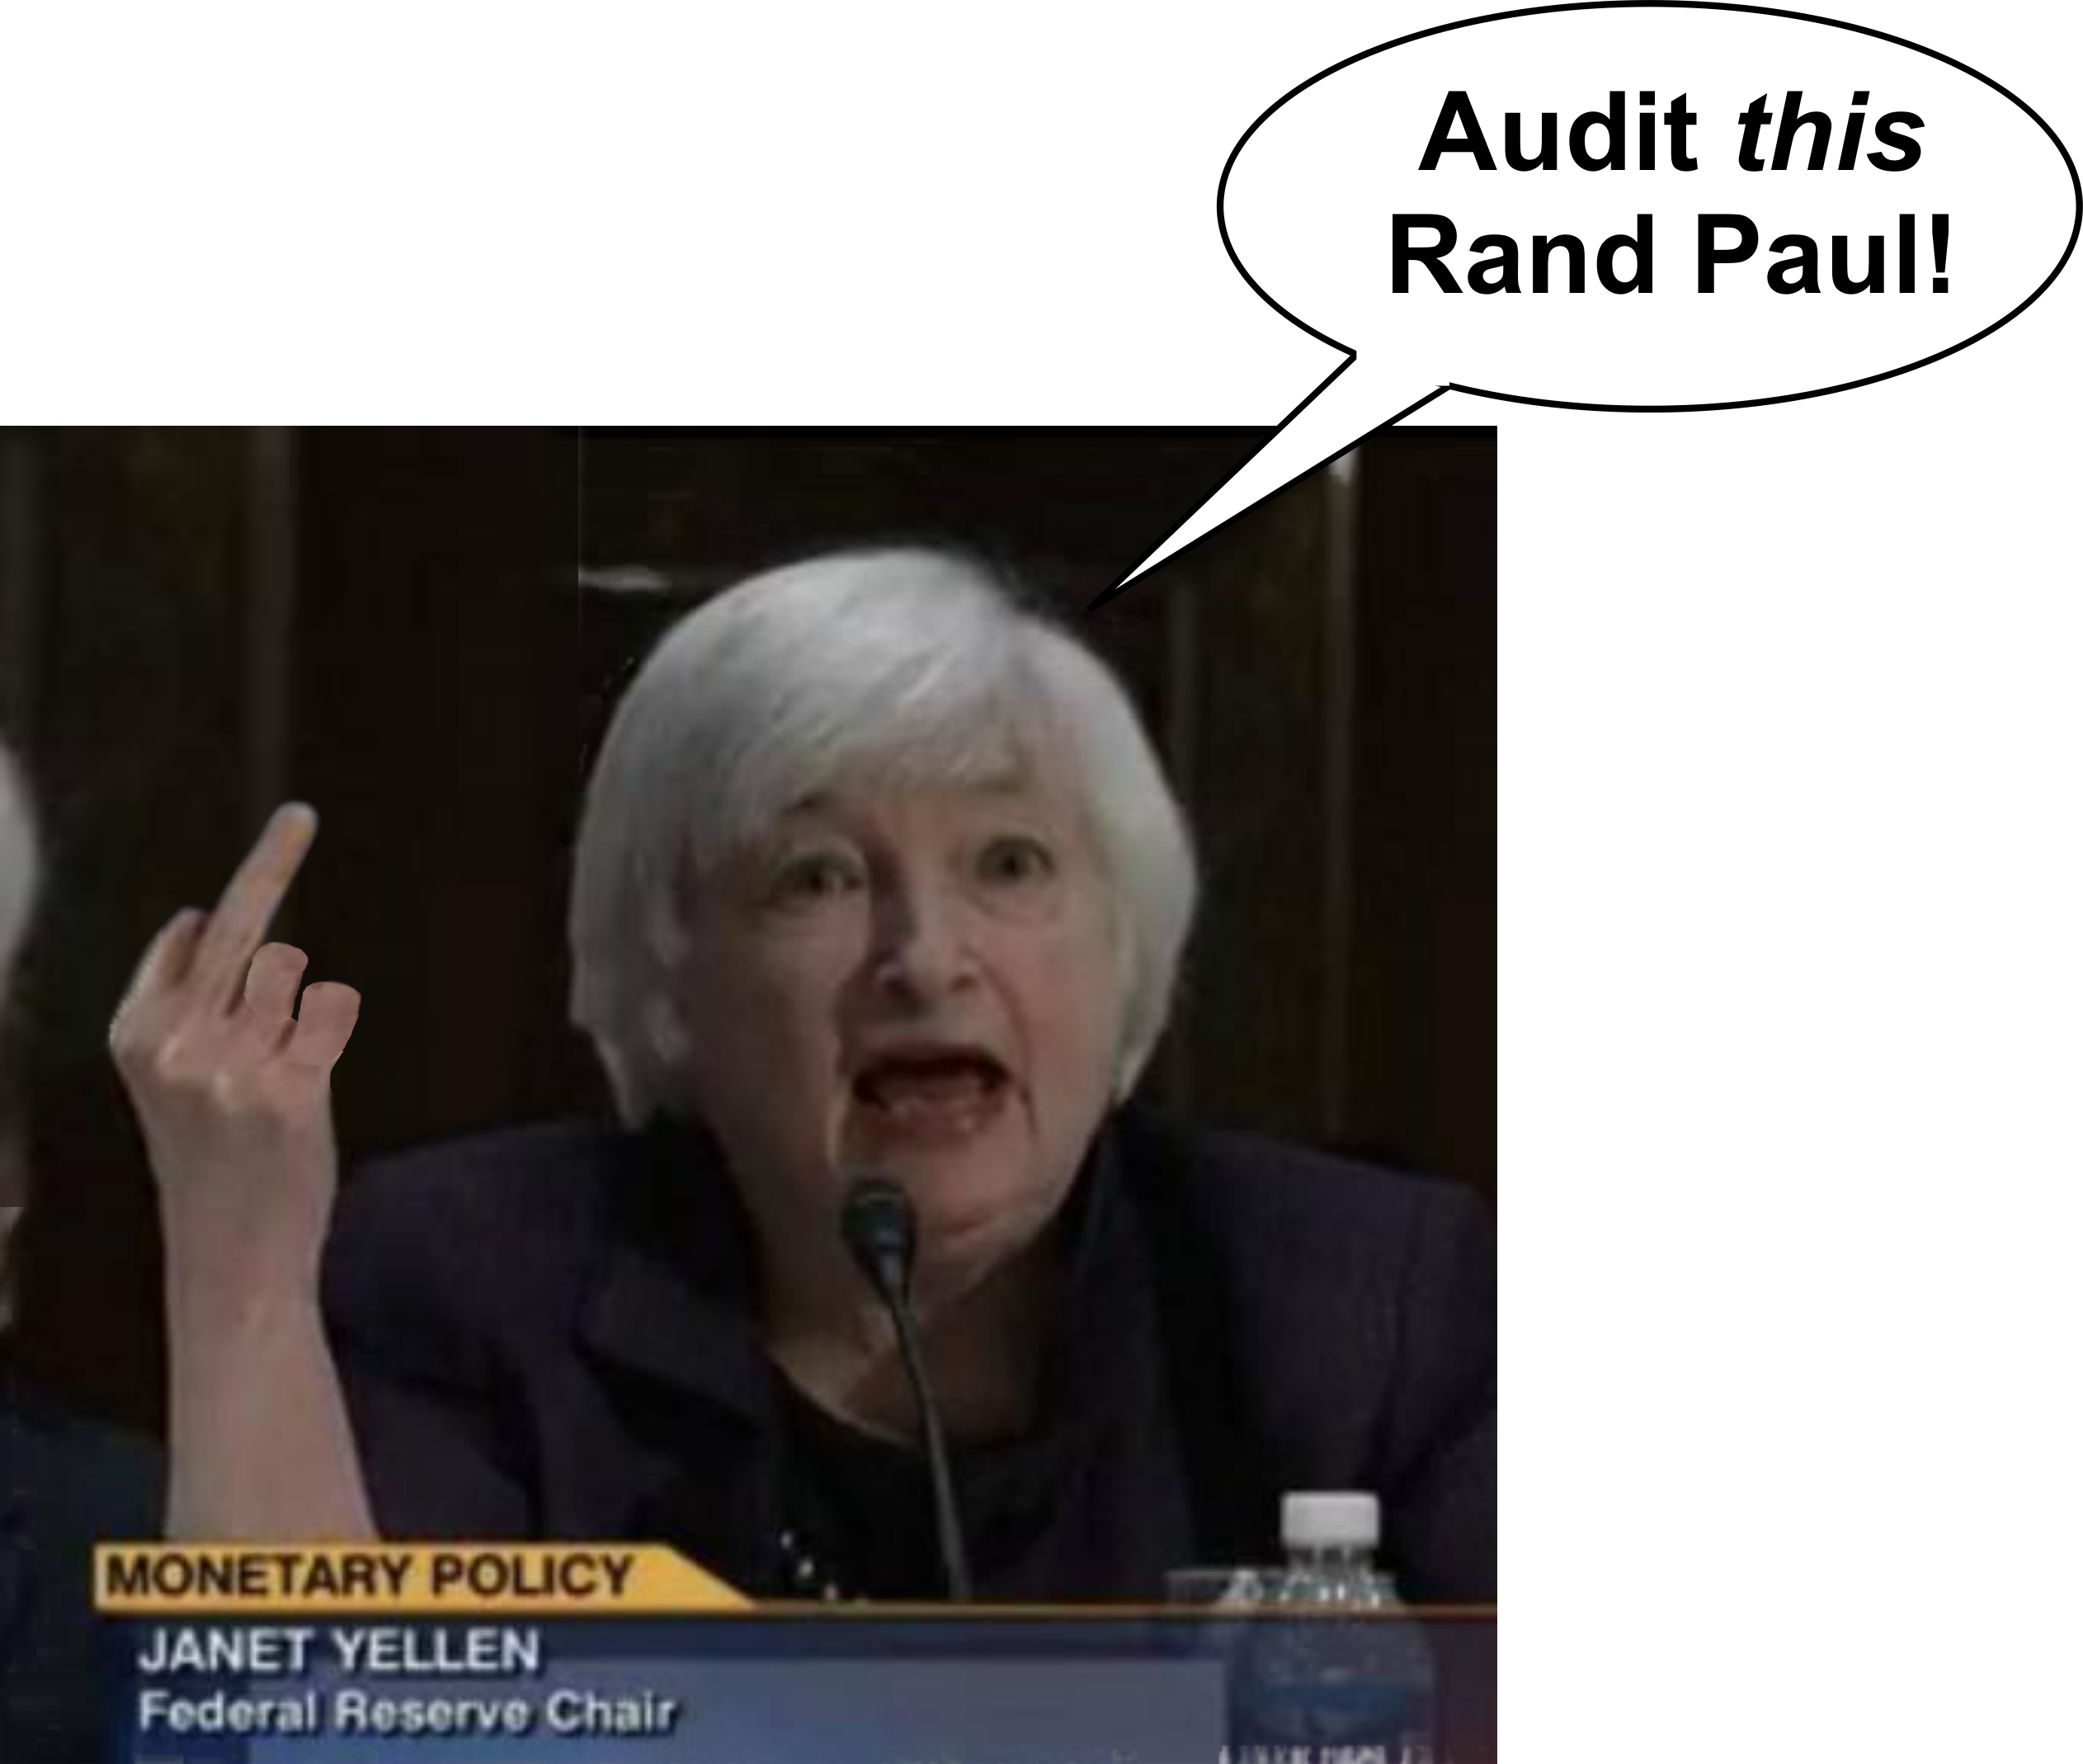 janet yellen in a moment of pique full spectrum domino janet yellen in a moment of pique